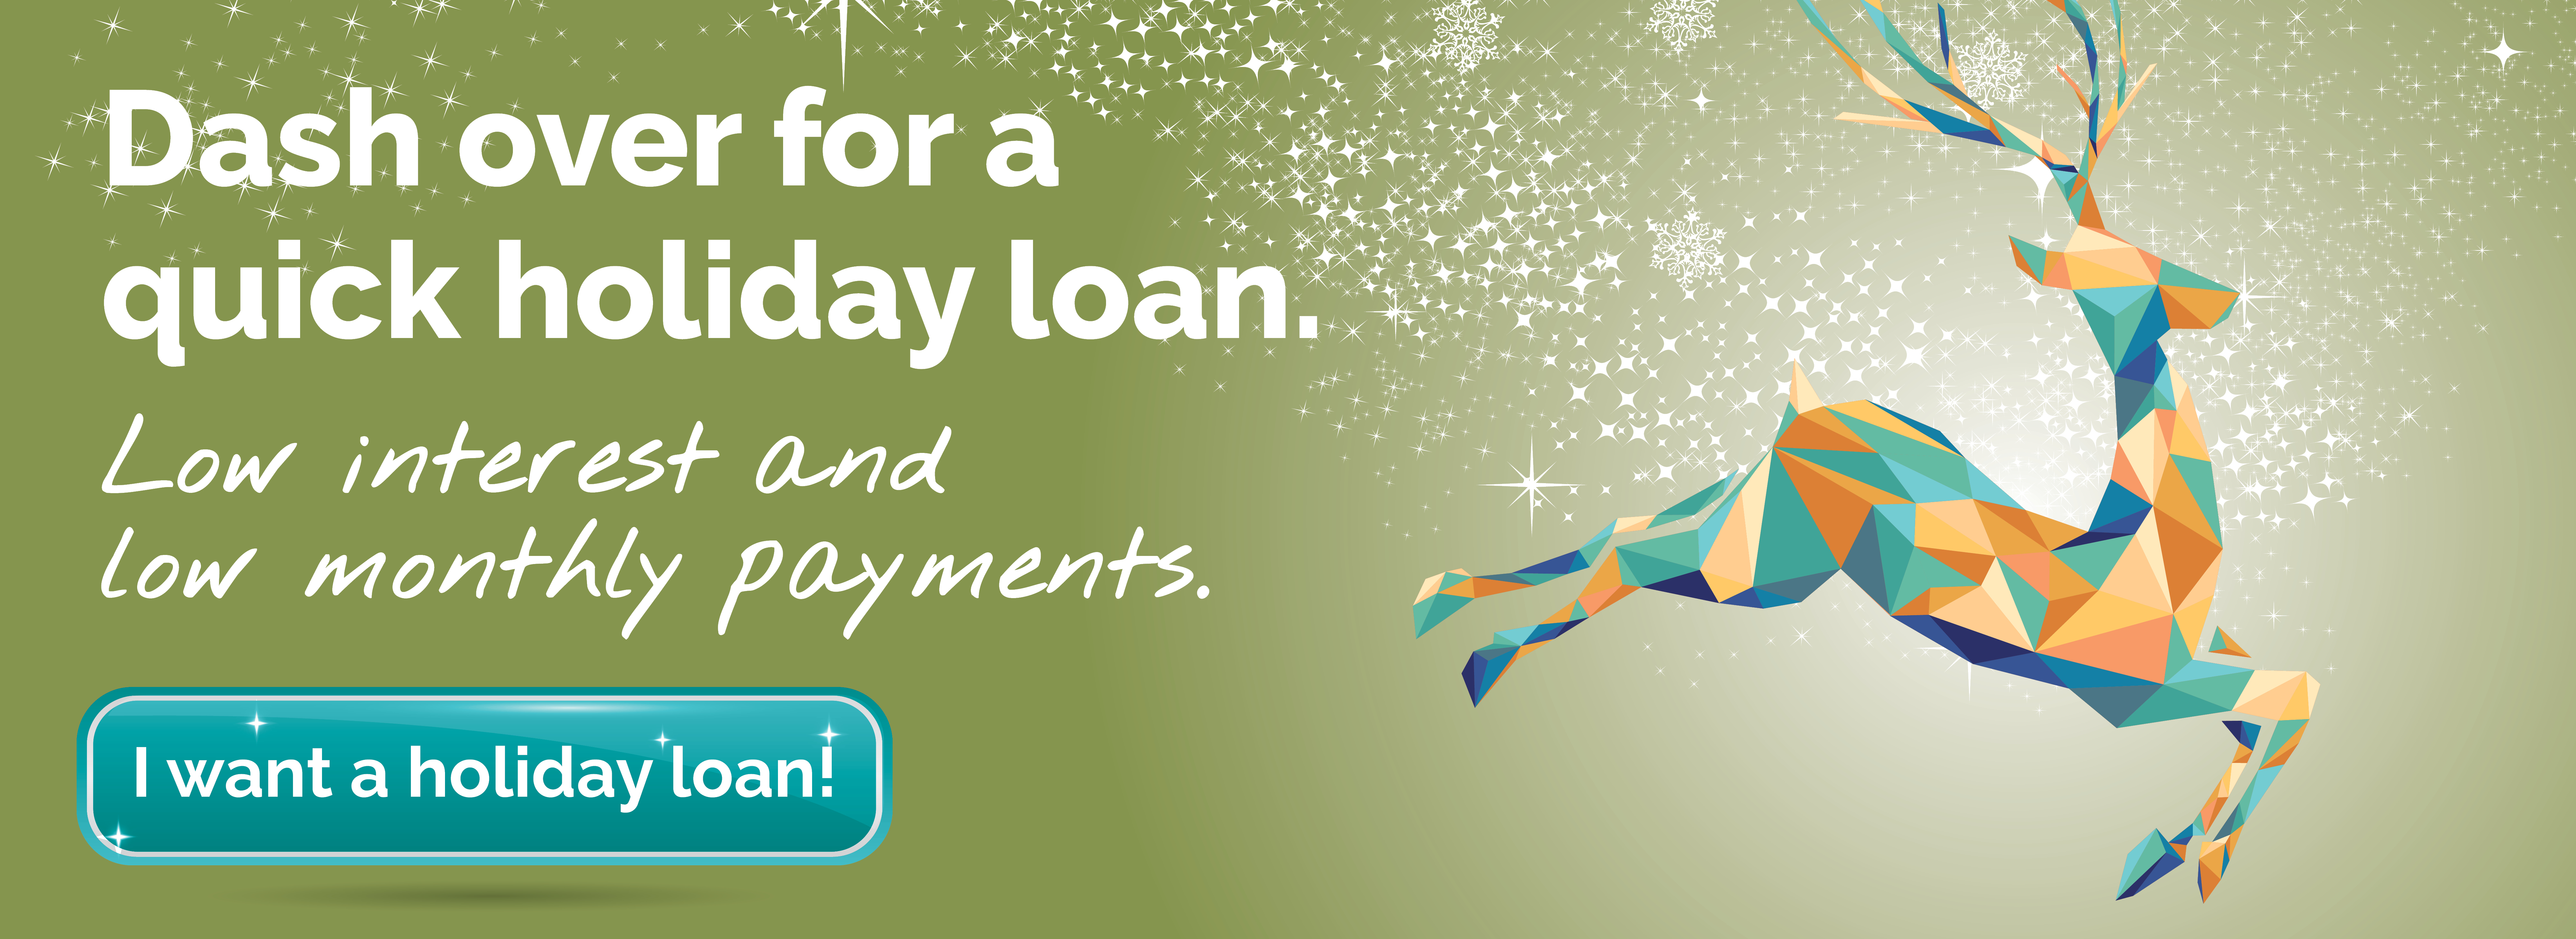 holiday loan with deer image